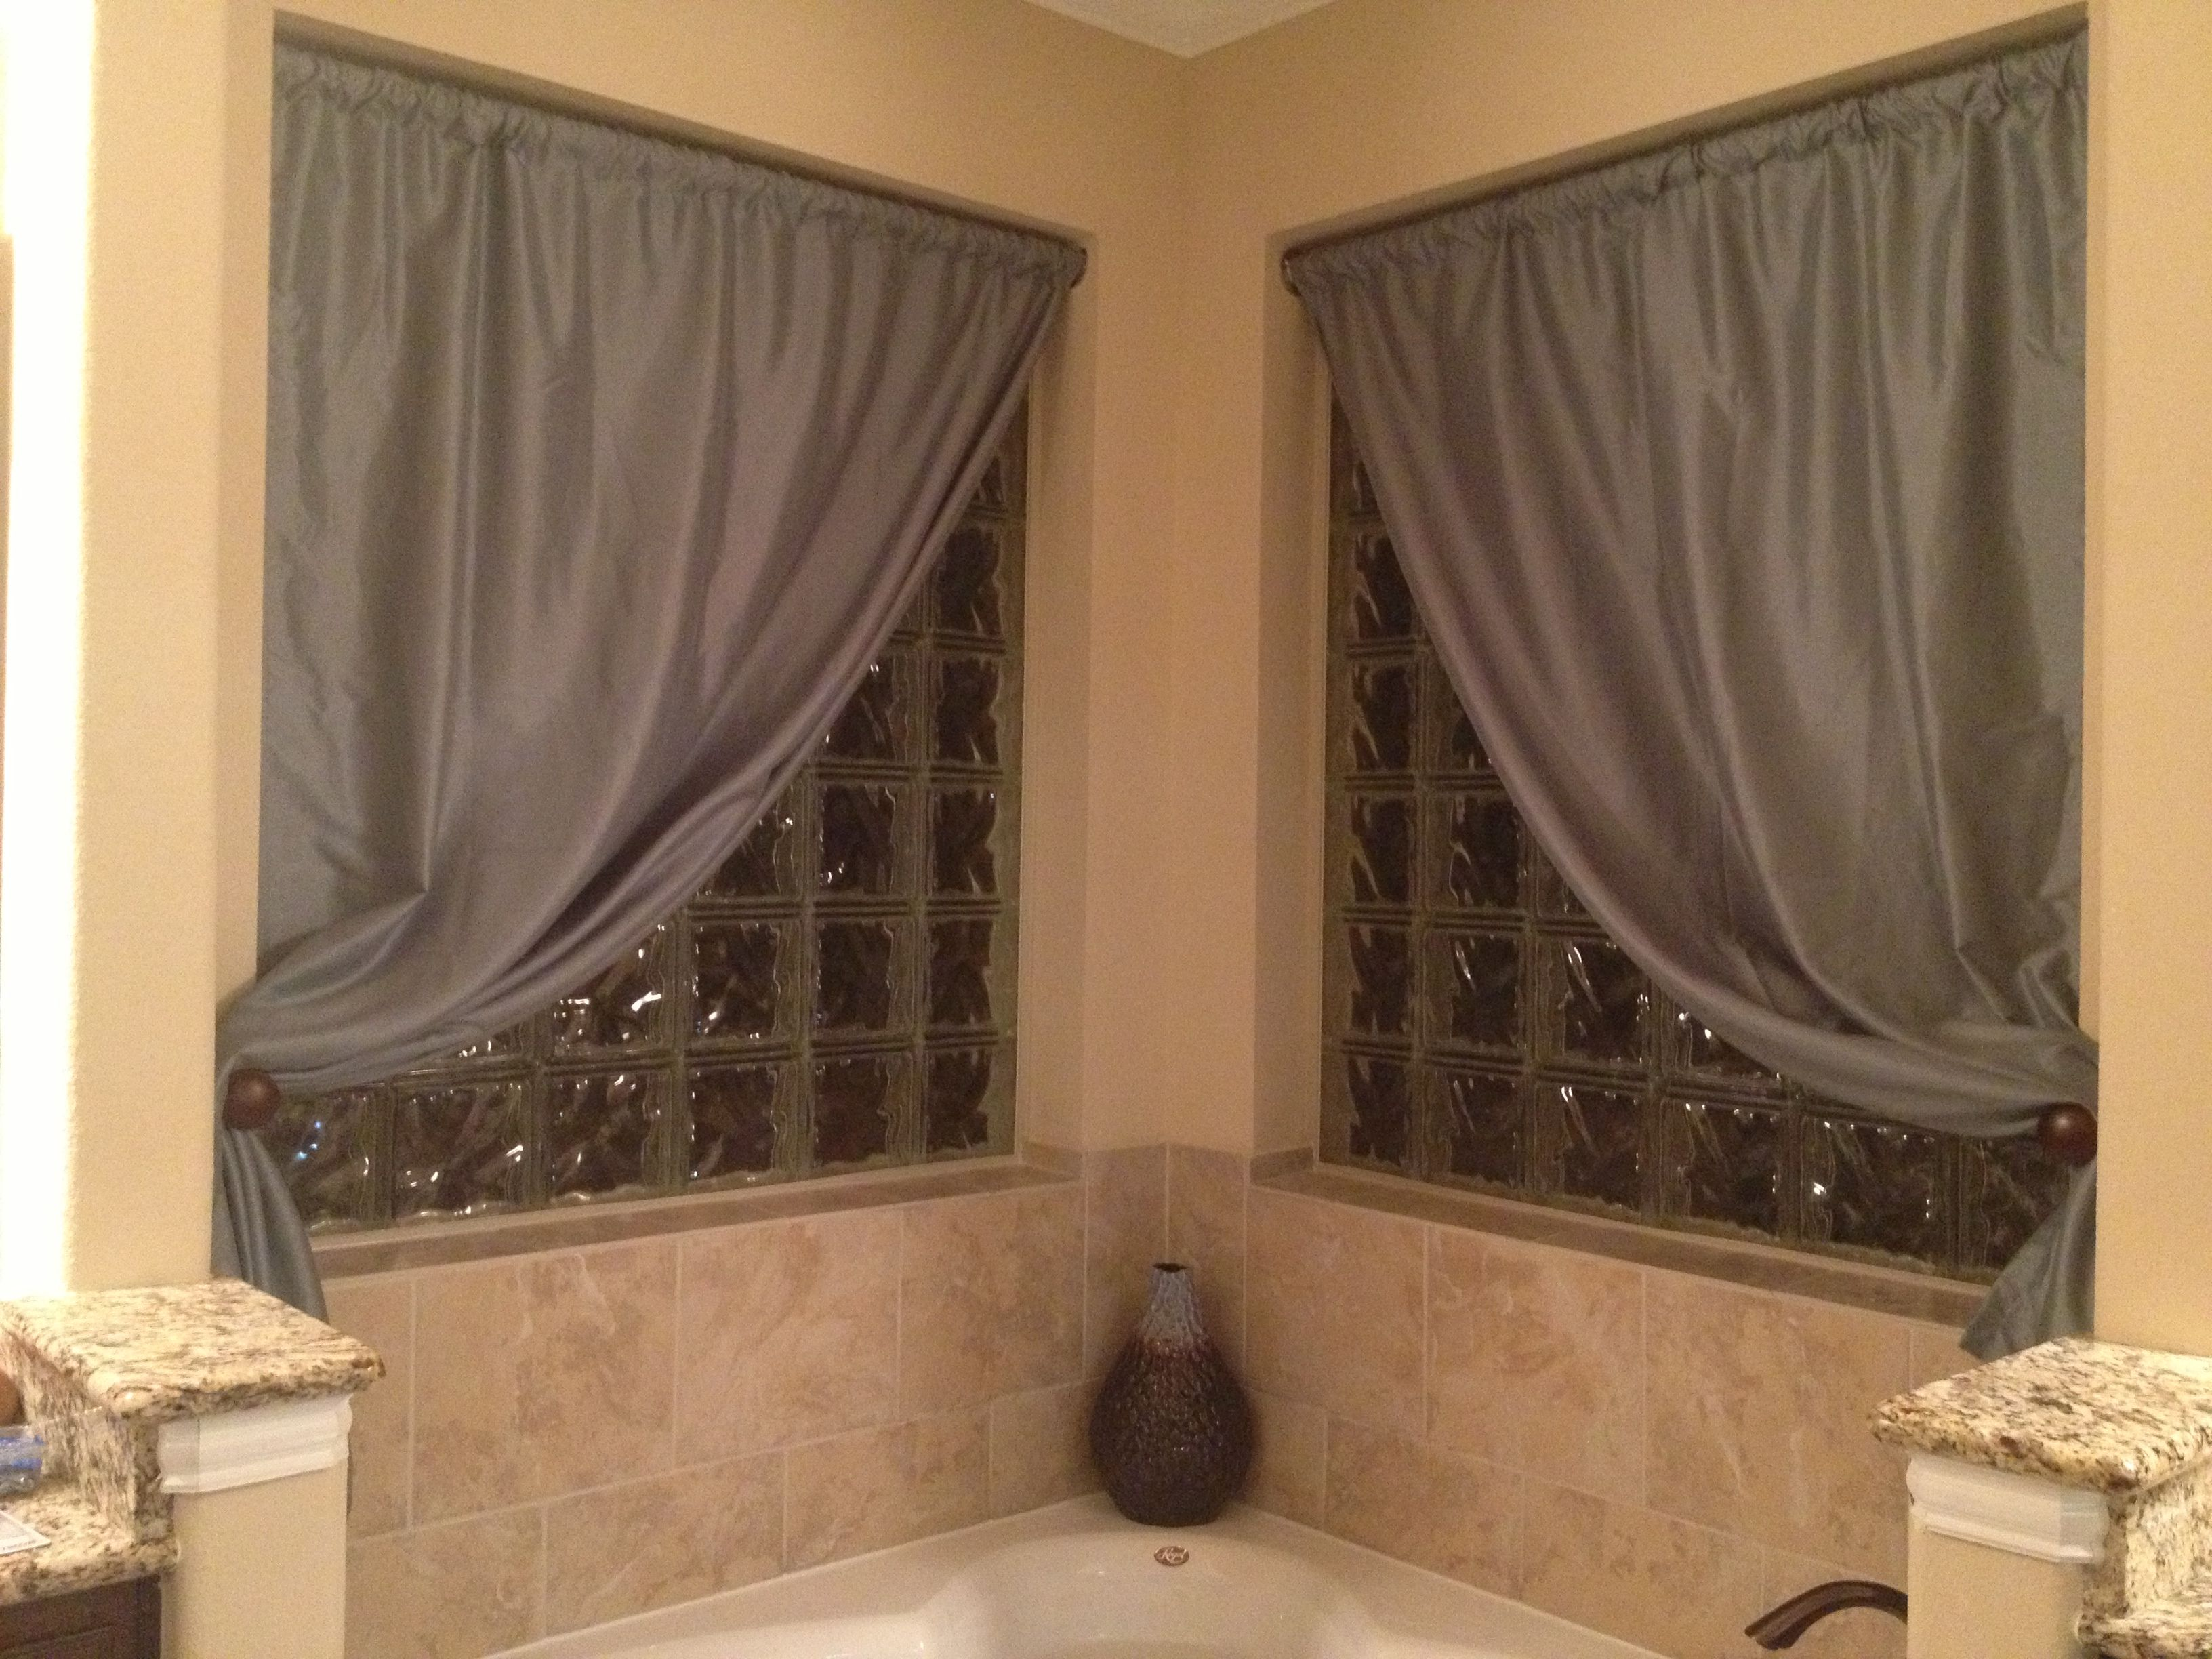 Bathroom Window Molding bathroomput frosty film on windows with etching design, then